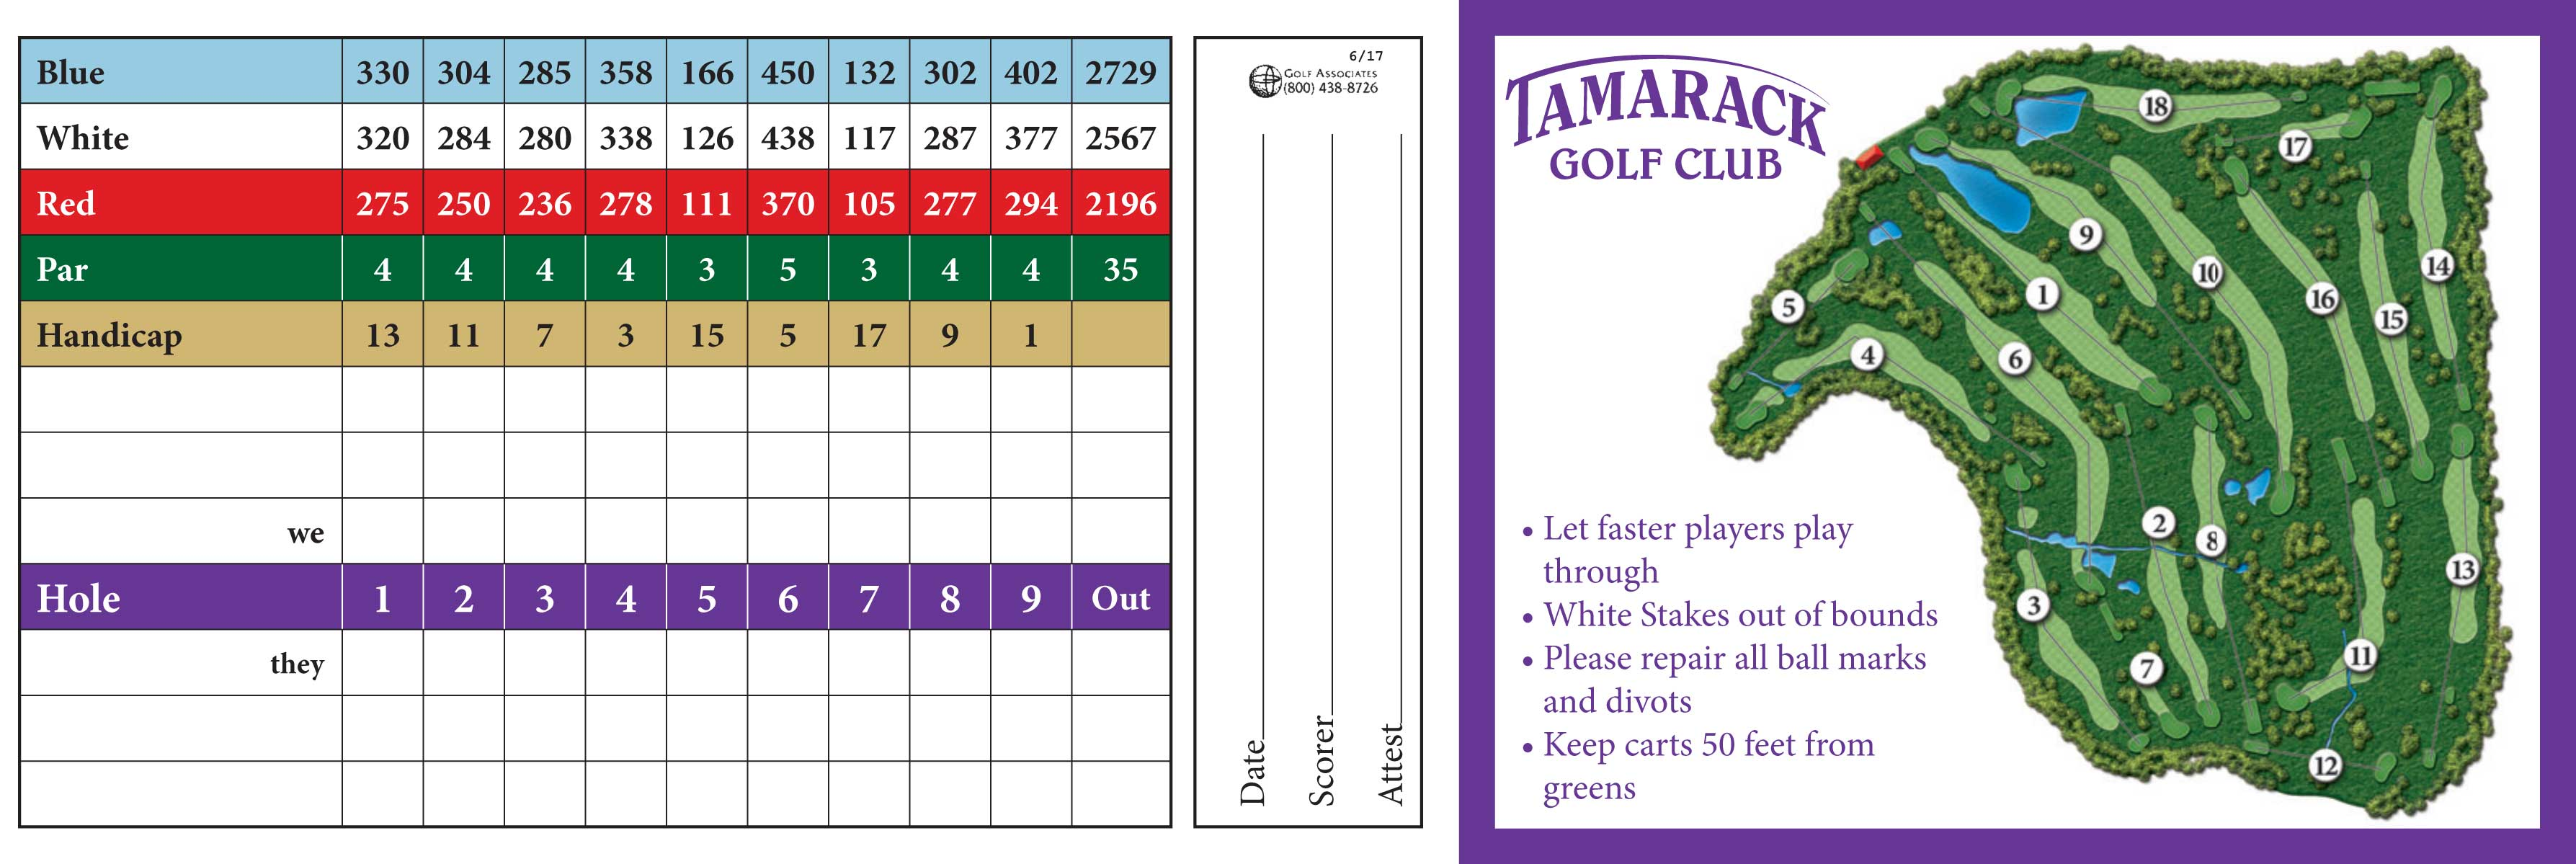 Image of the front of the score card at Tamarack Golf Club in Oswego, NY.